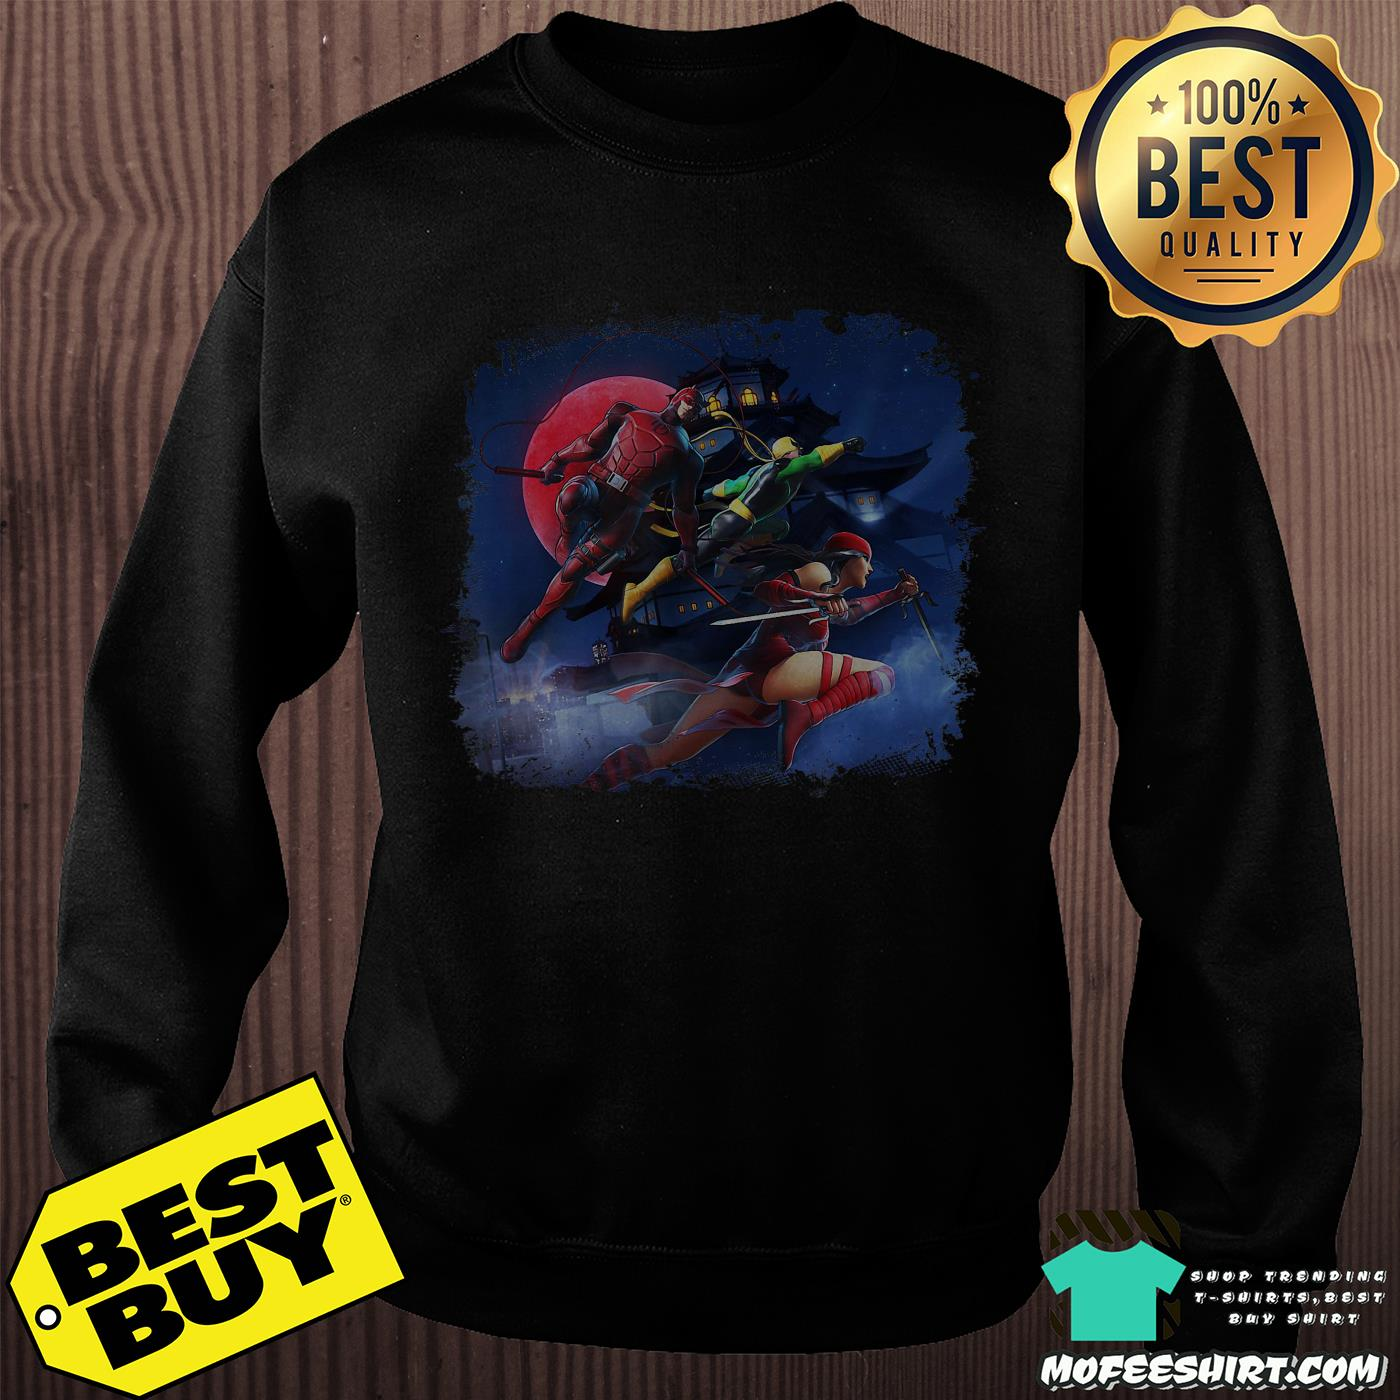 Marvel ultimate alliance 3 the black characters shirt